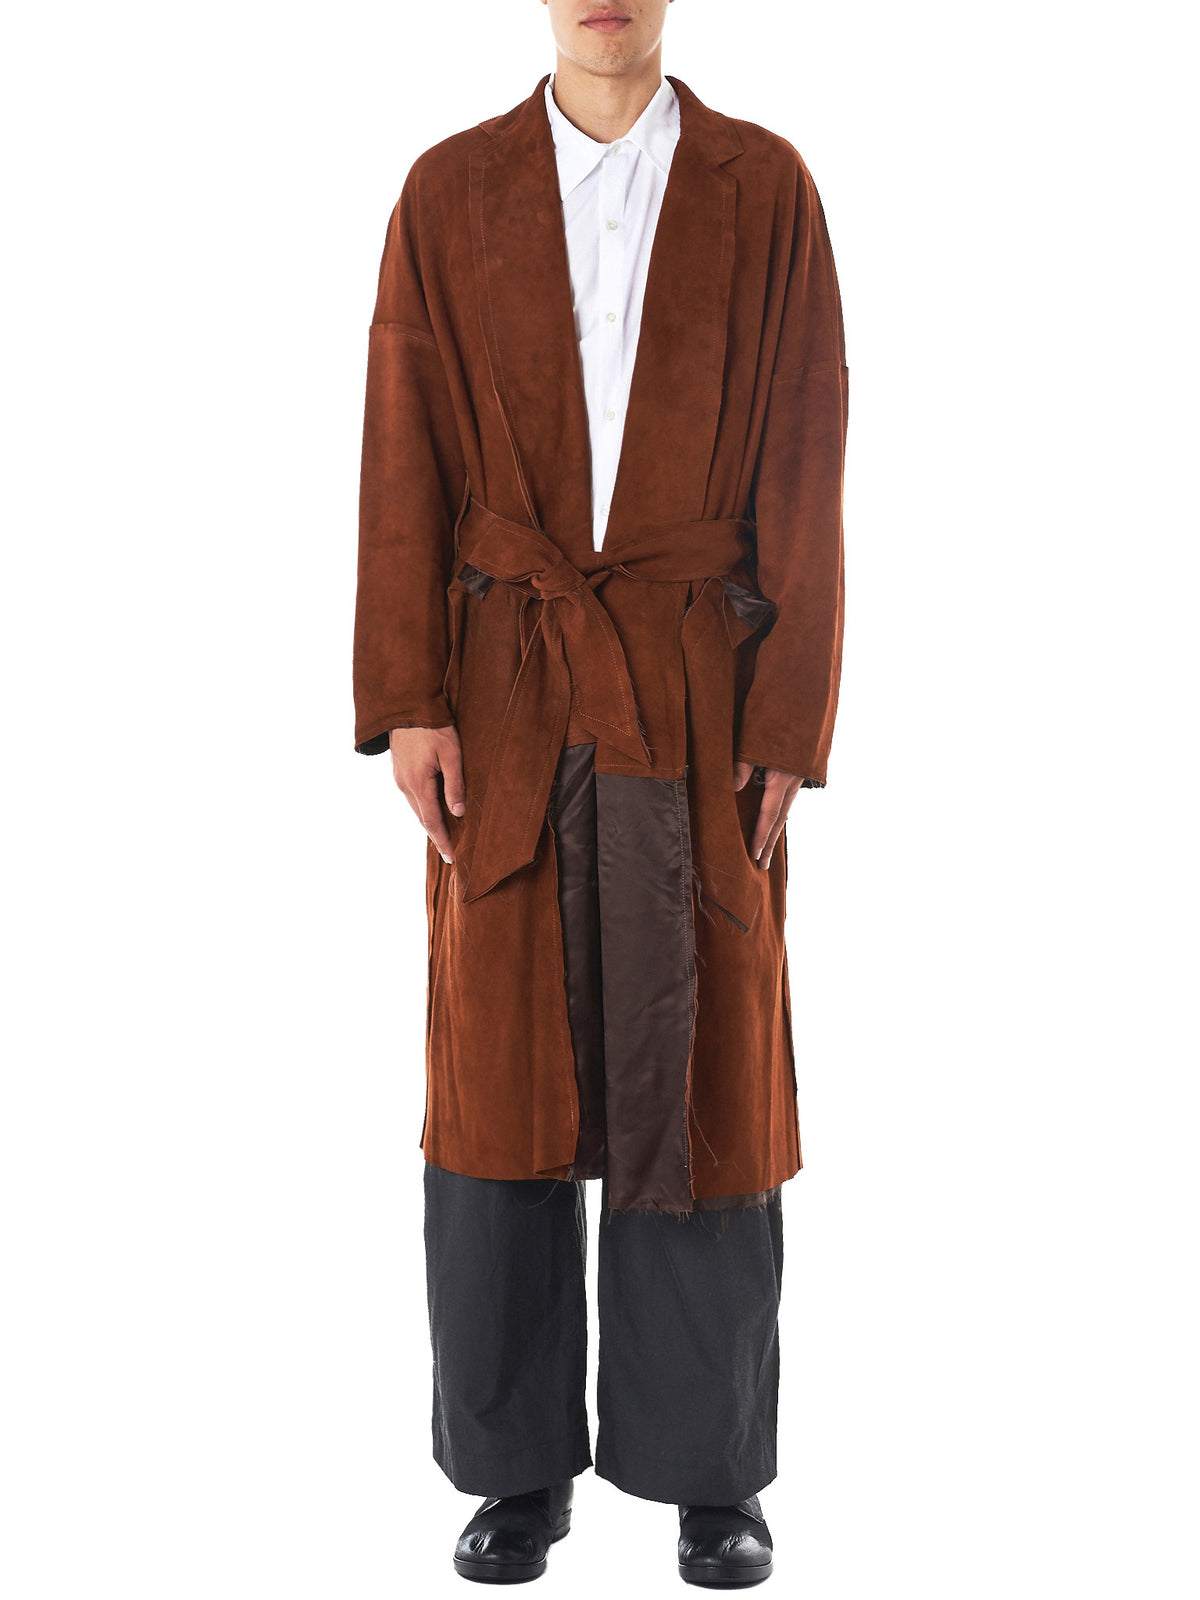 Open Felt Suede Trench Coat (SG-C04-900-BROWN)